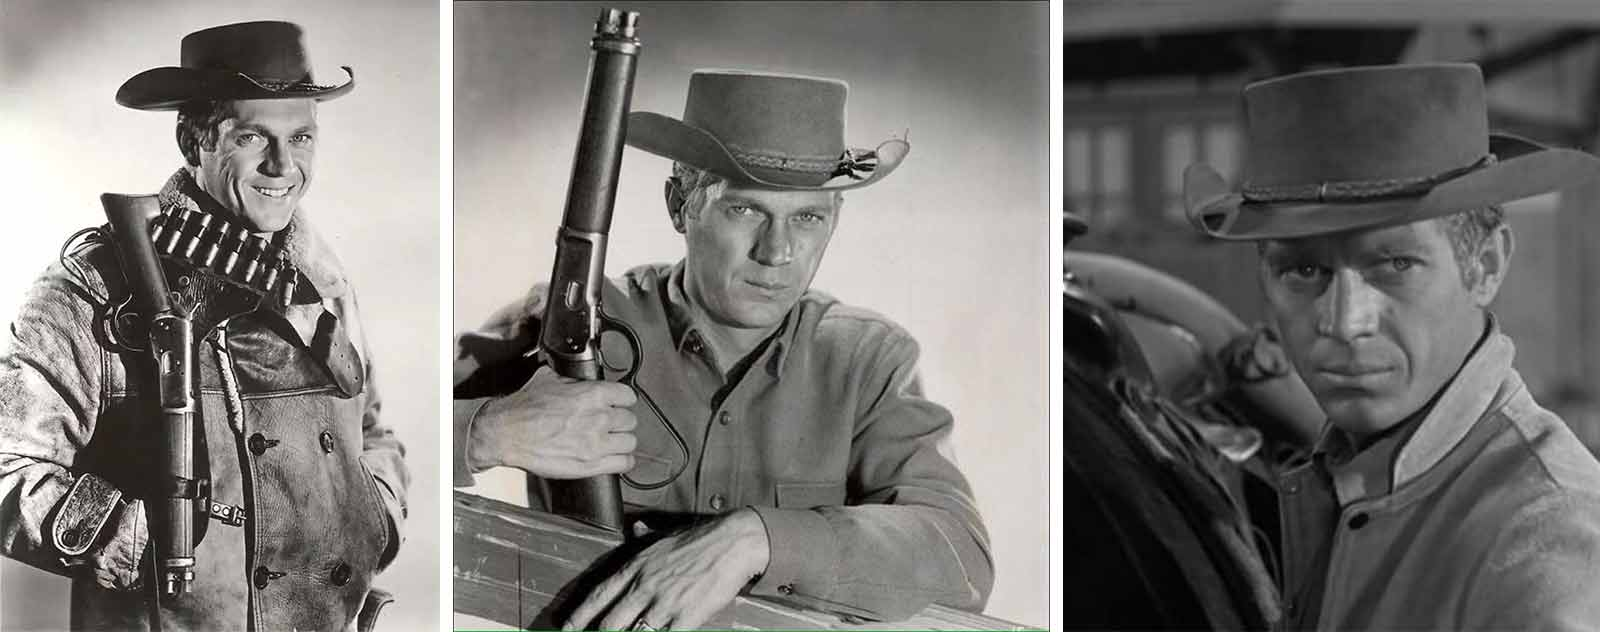 steve mcqueen wanted dead or alive